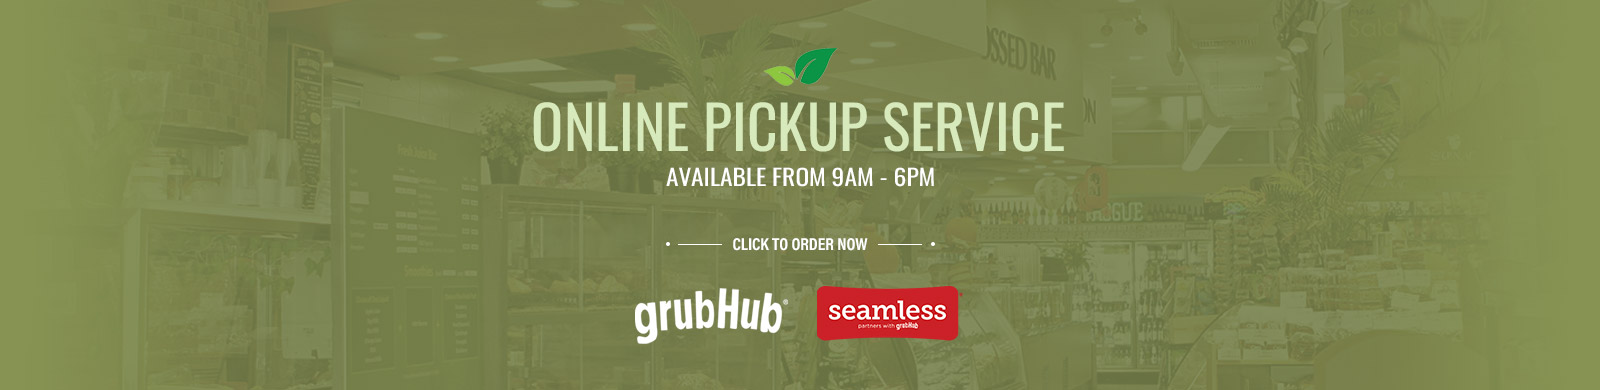 Online Pickup Service Available from 9AM - 8PM